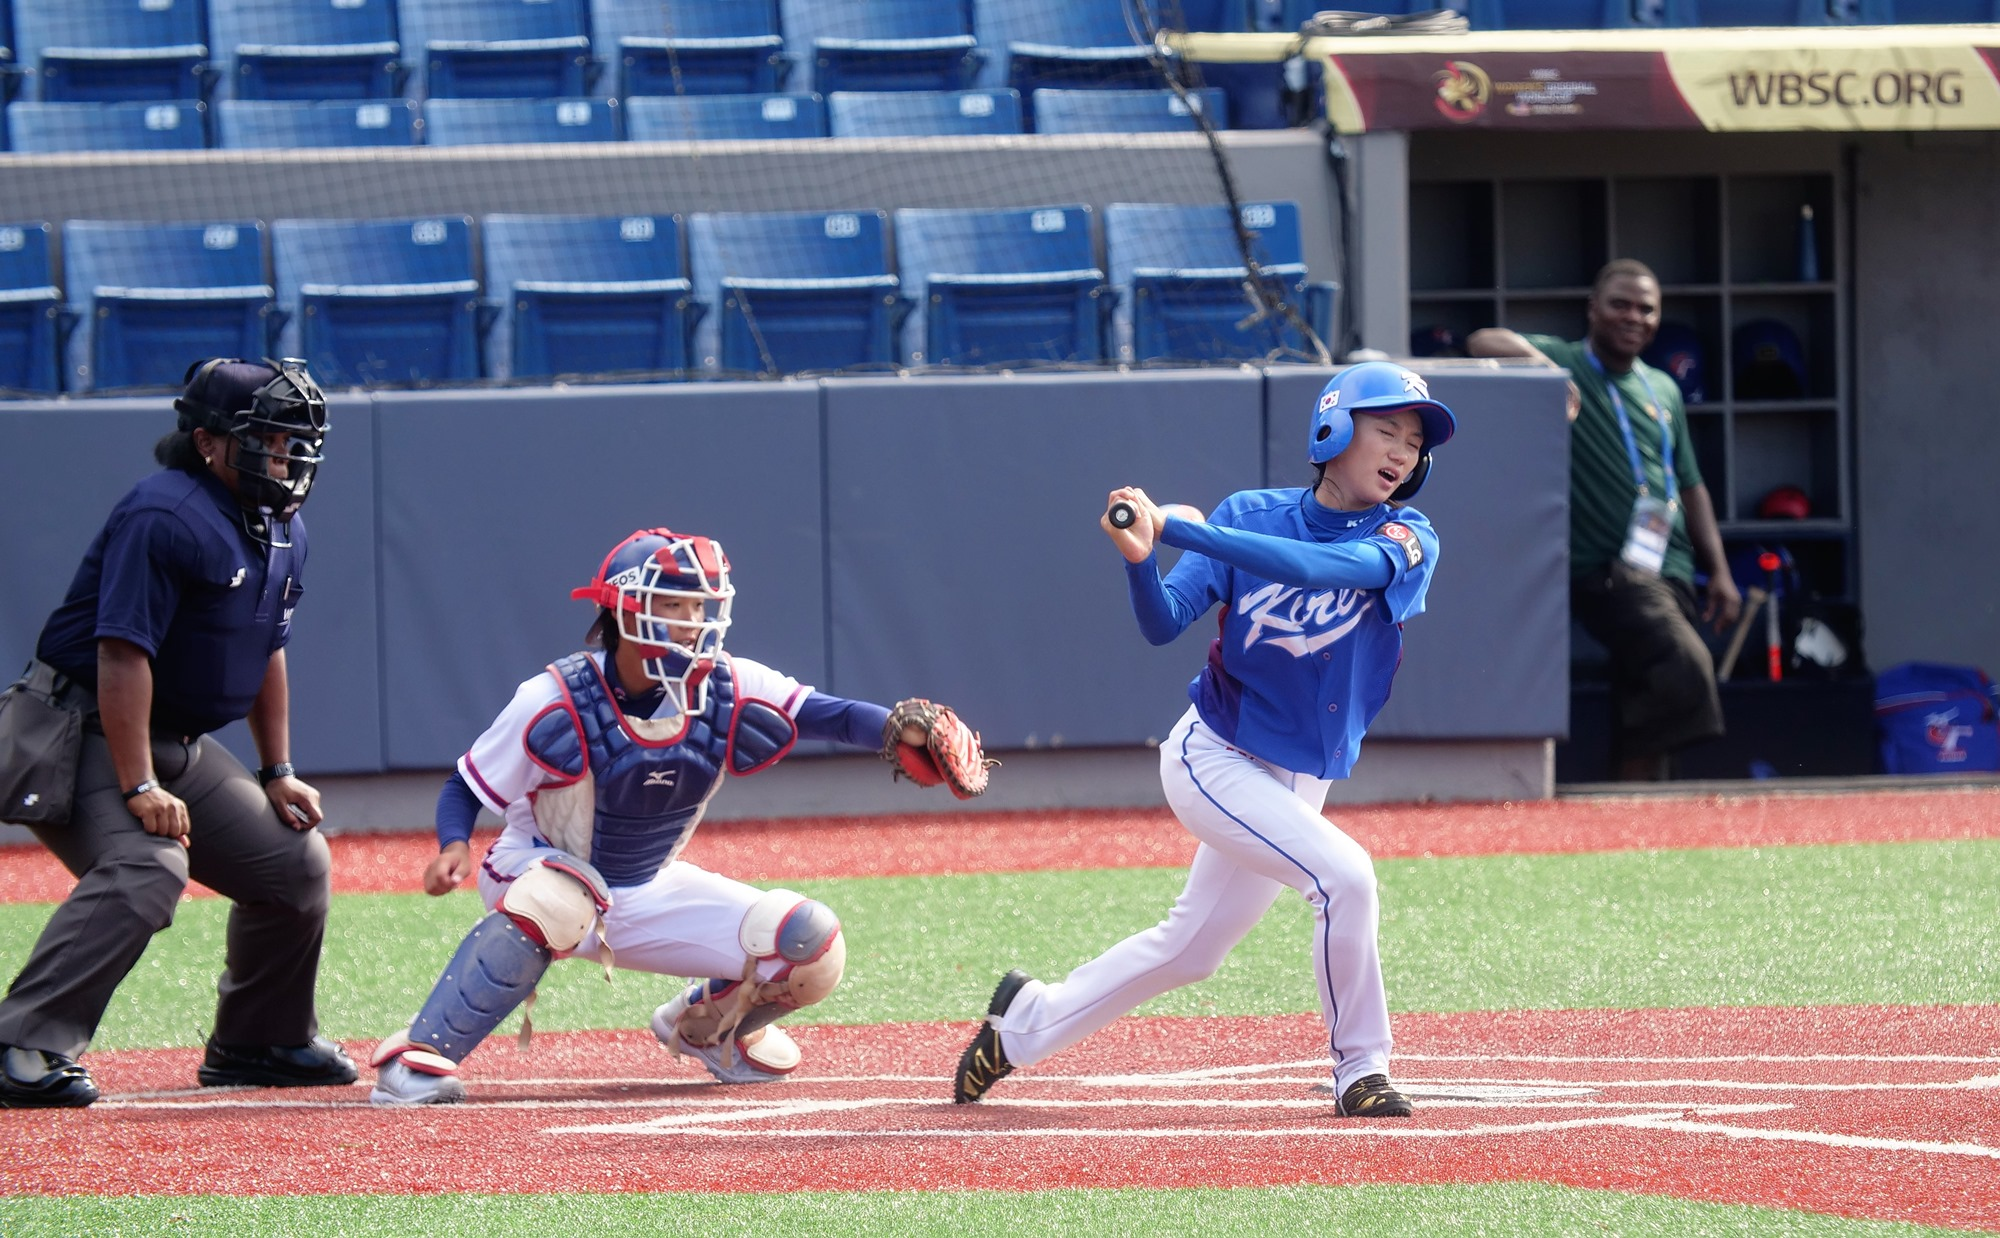 The game between Chinese Taipei and Korea was decided in the first couple of innings